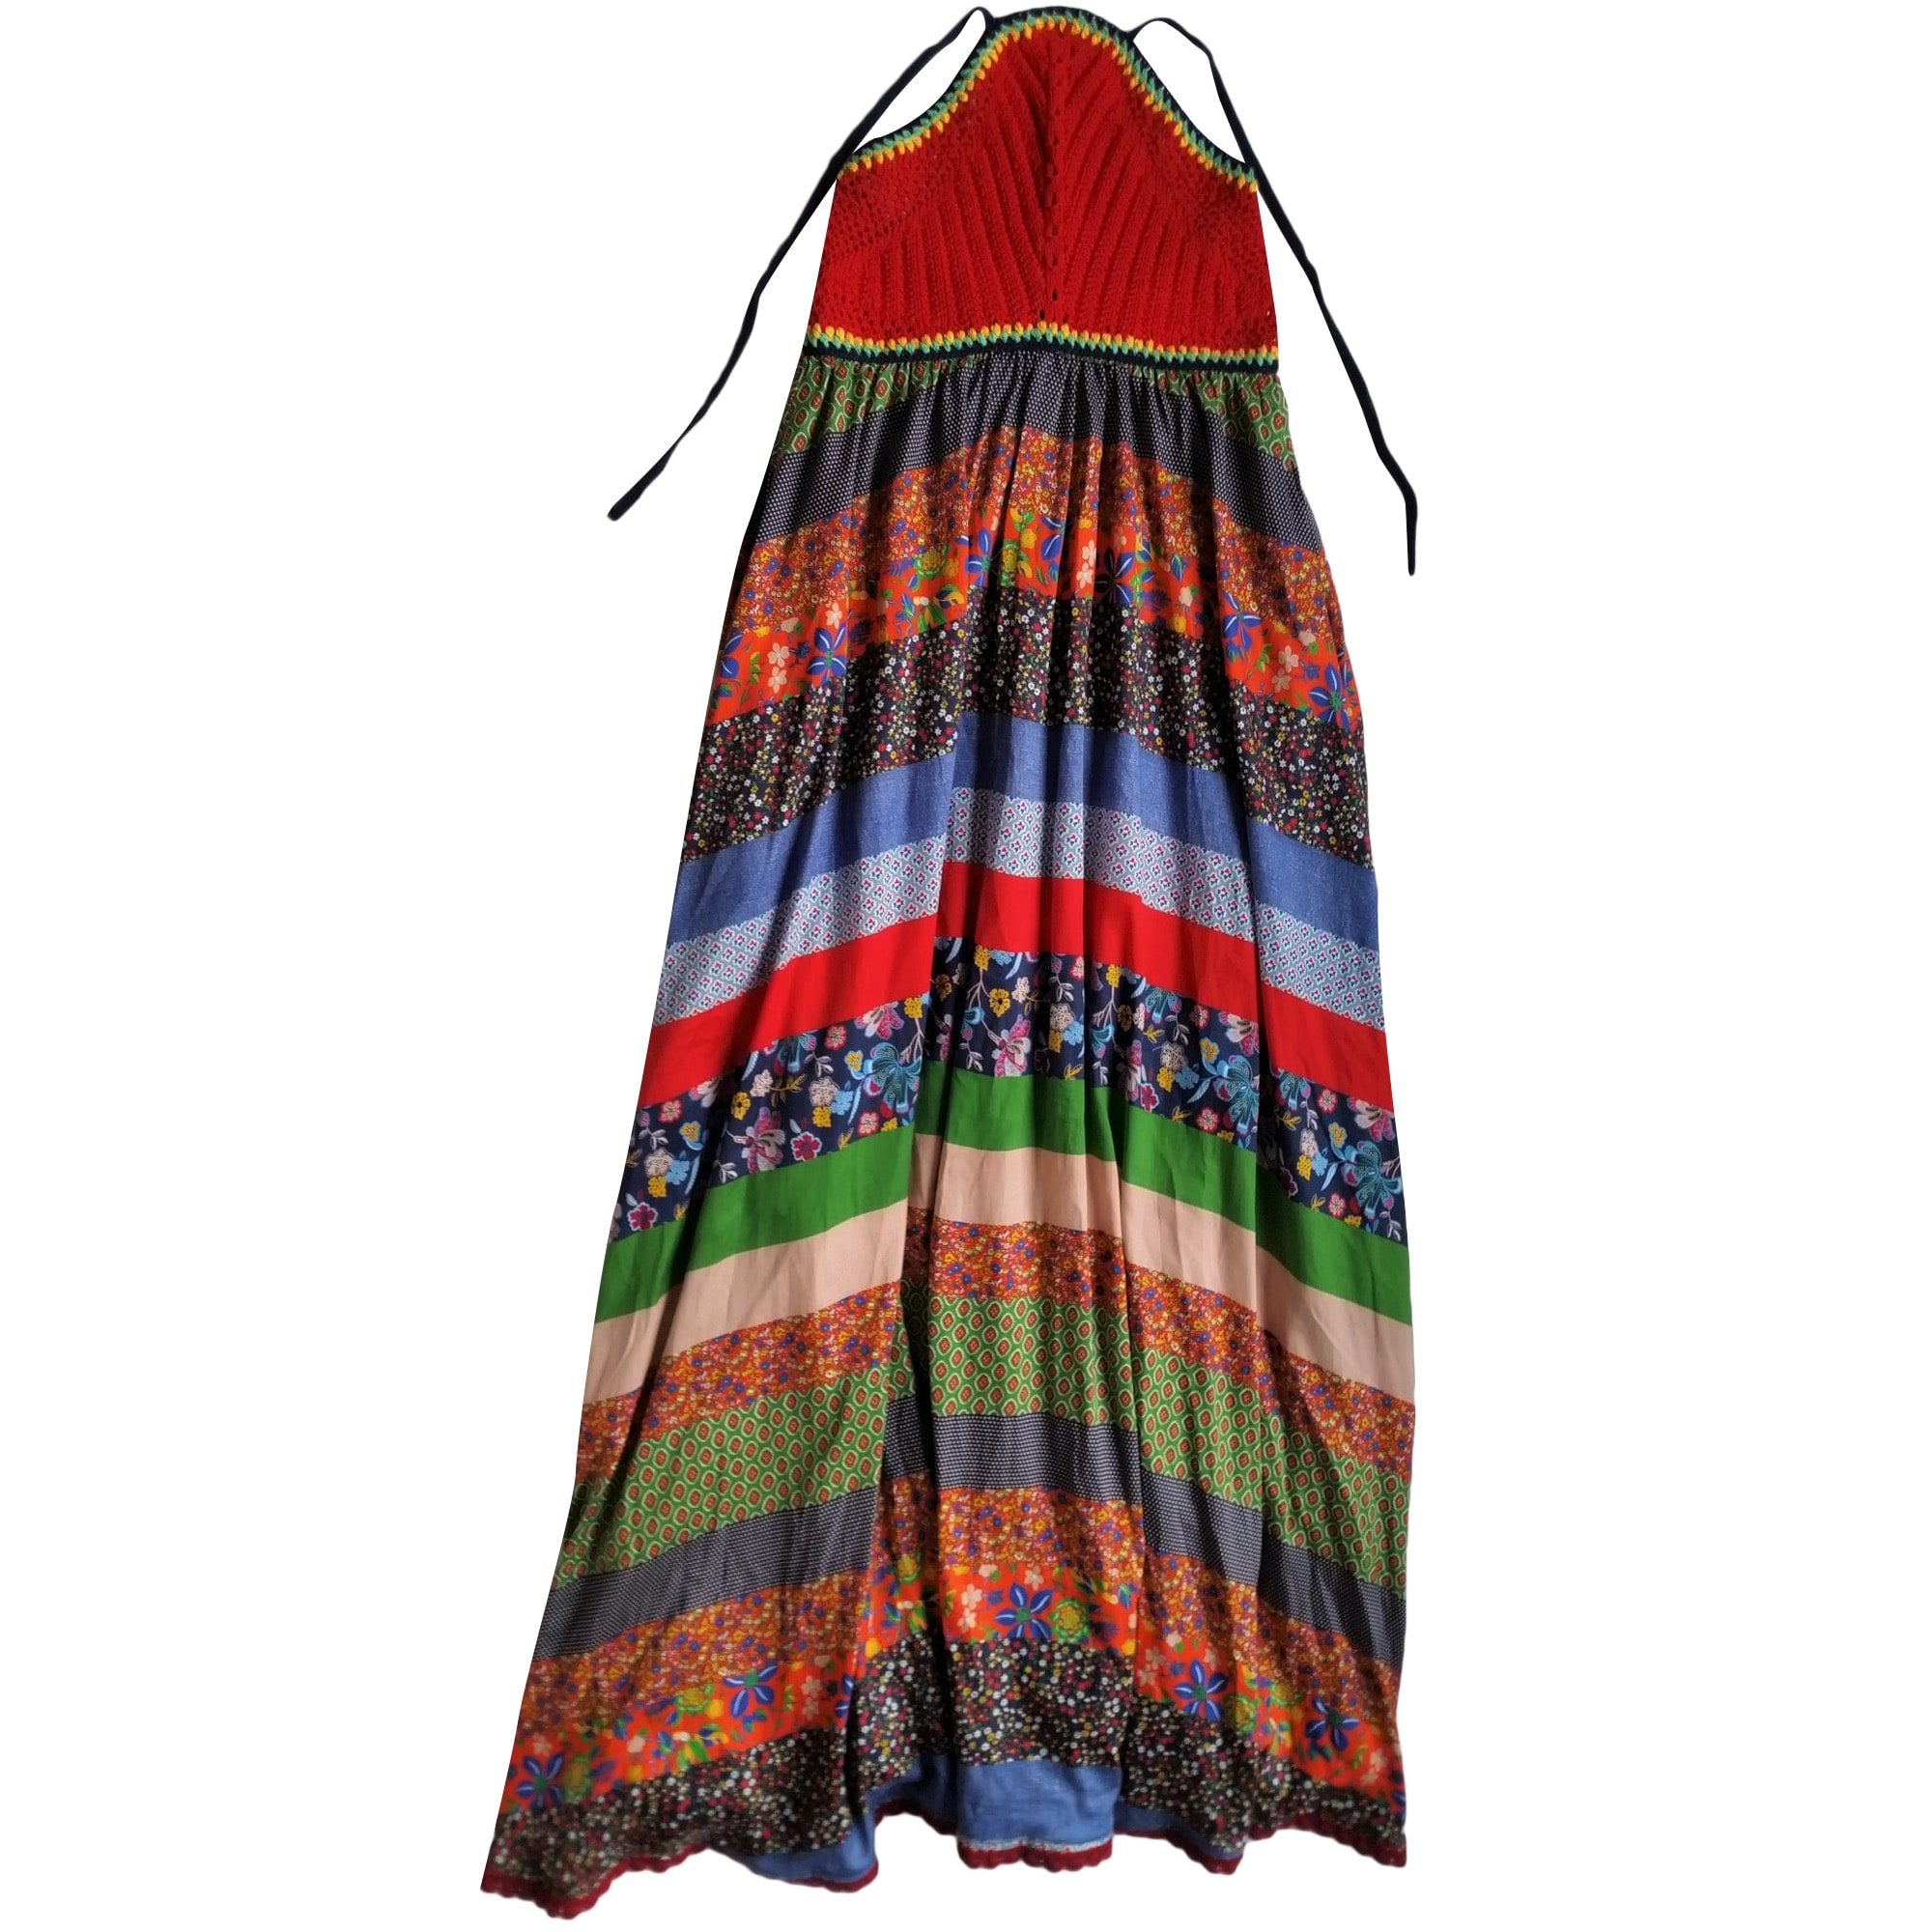 46ee01c3597 Maxi Dress TOMMY HILFIGER 38 (M, T2) multicolor - 7168961